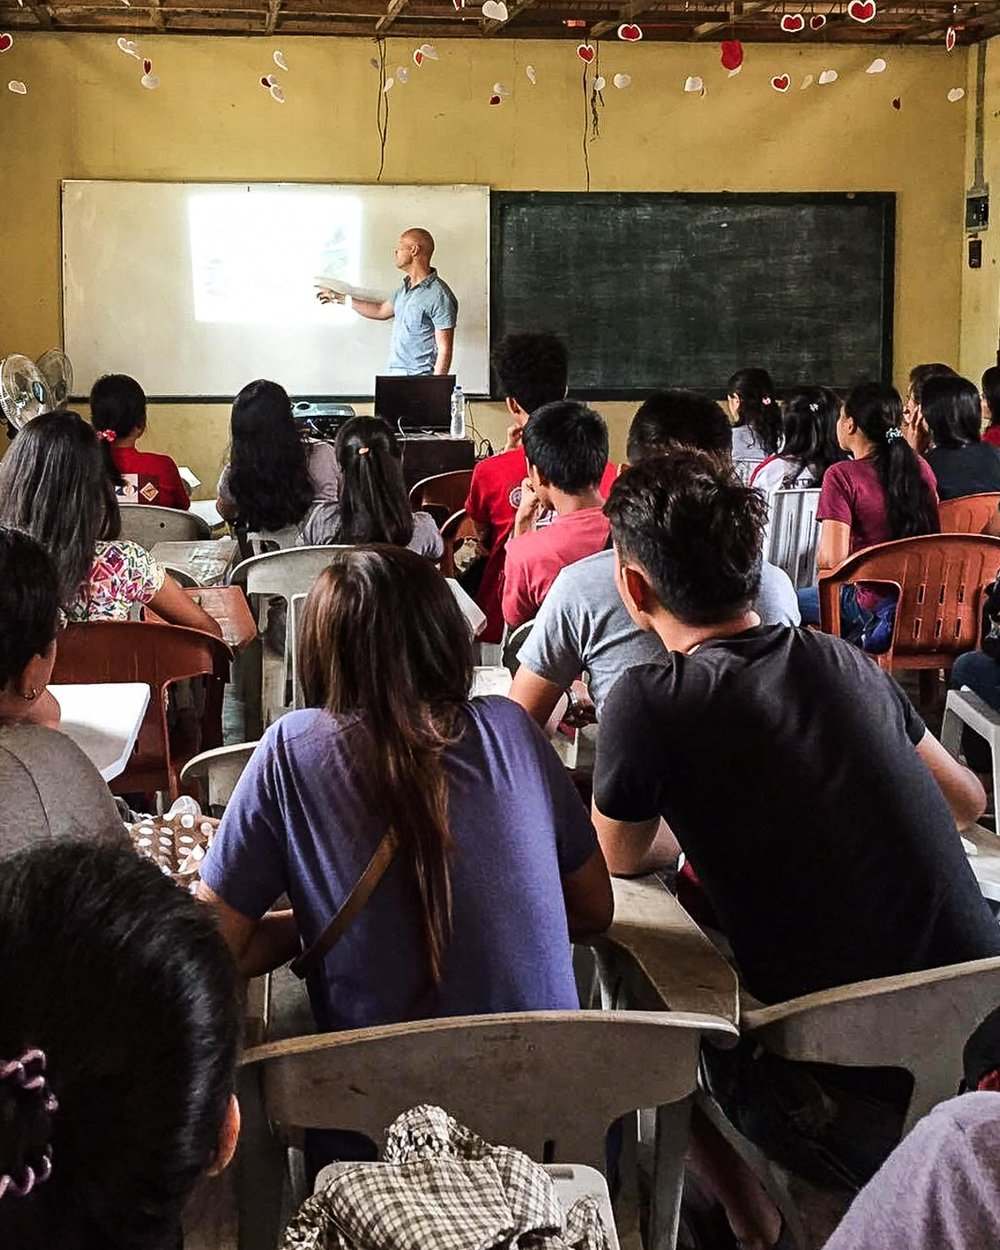 EASTERN VISAYAS STATE UNIVERSITY   Through seminars and lectures we are sharing our knowledge and expertise with Engineering Students studying at Eastern Visayas State University. Read more  here.